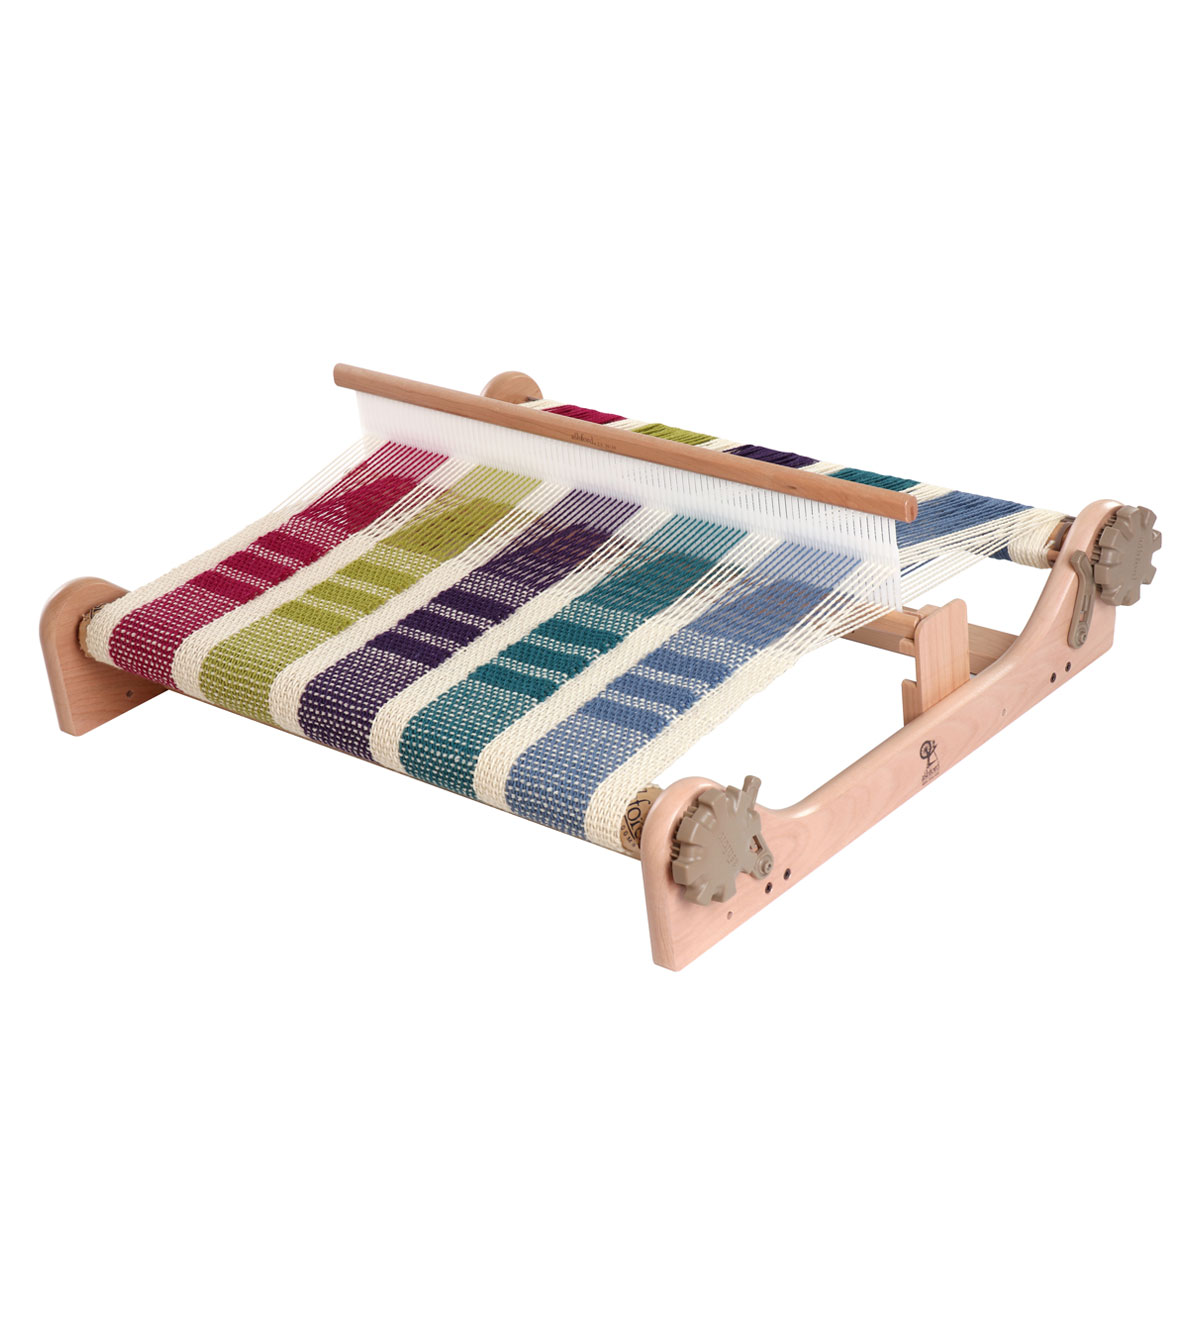 Ashford Handicrafts Rigid Heddle Loom